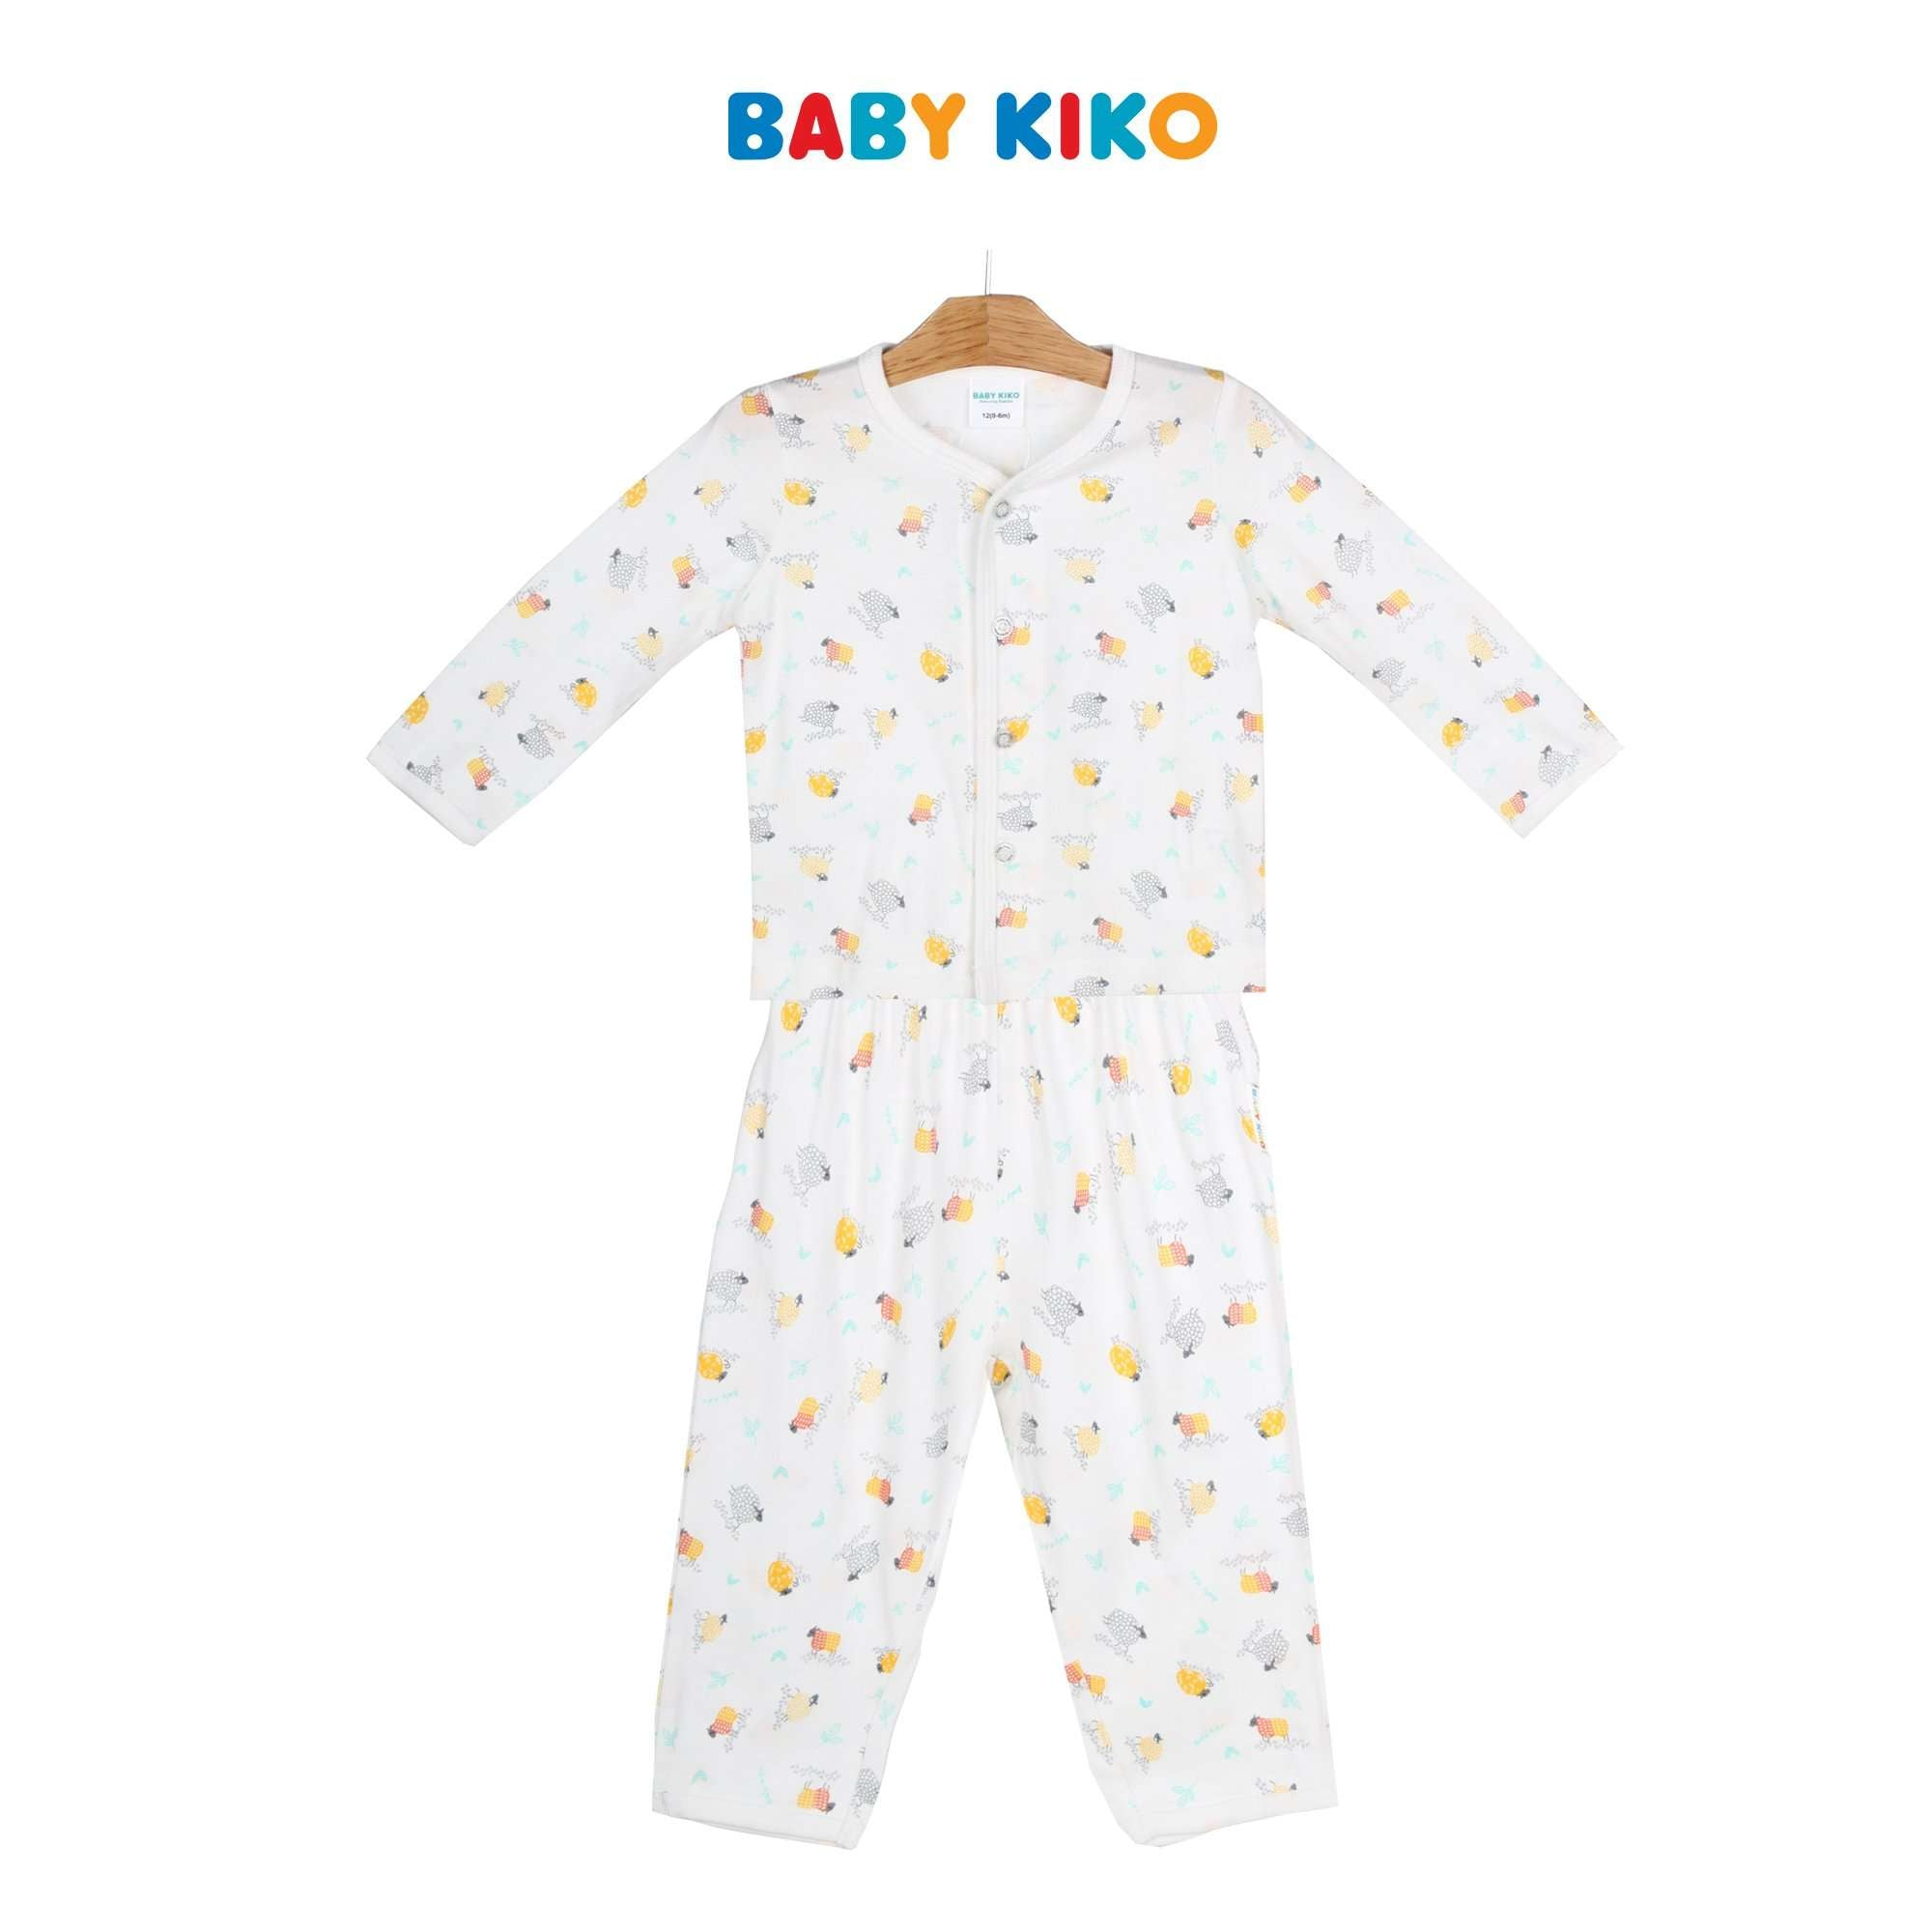 Baby KIKO Baby Boy Long Sleeve Long Pants Suit - White 320133-431 : Buy Baby KIKO online at CMG.MY